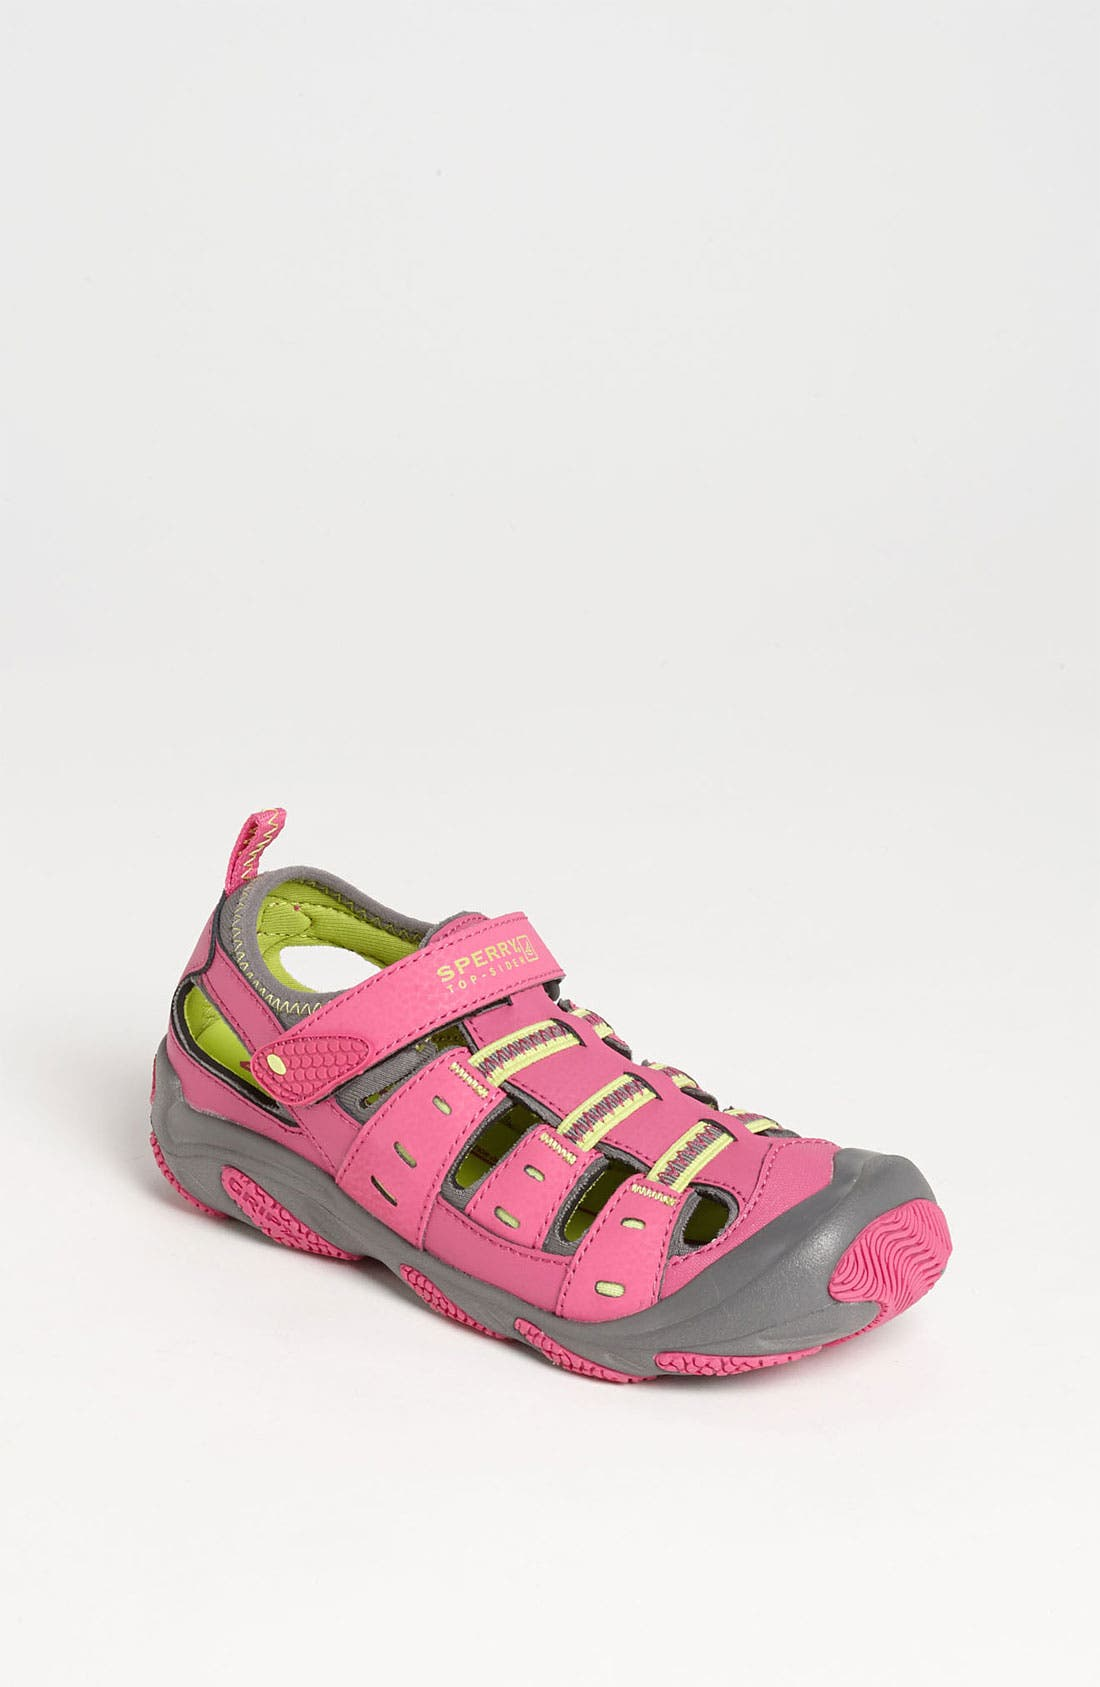 Alternate Image 1 Selected - Sperry Top-Sider® Kids 'Wet Tech Fisherman' Sandal (Walker, Toddler, Little Kid & Big Kid)